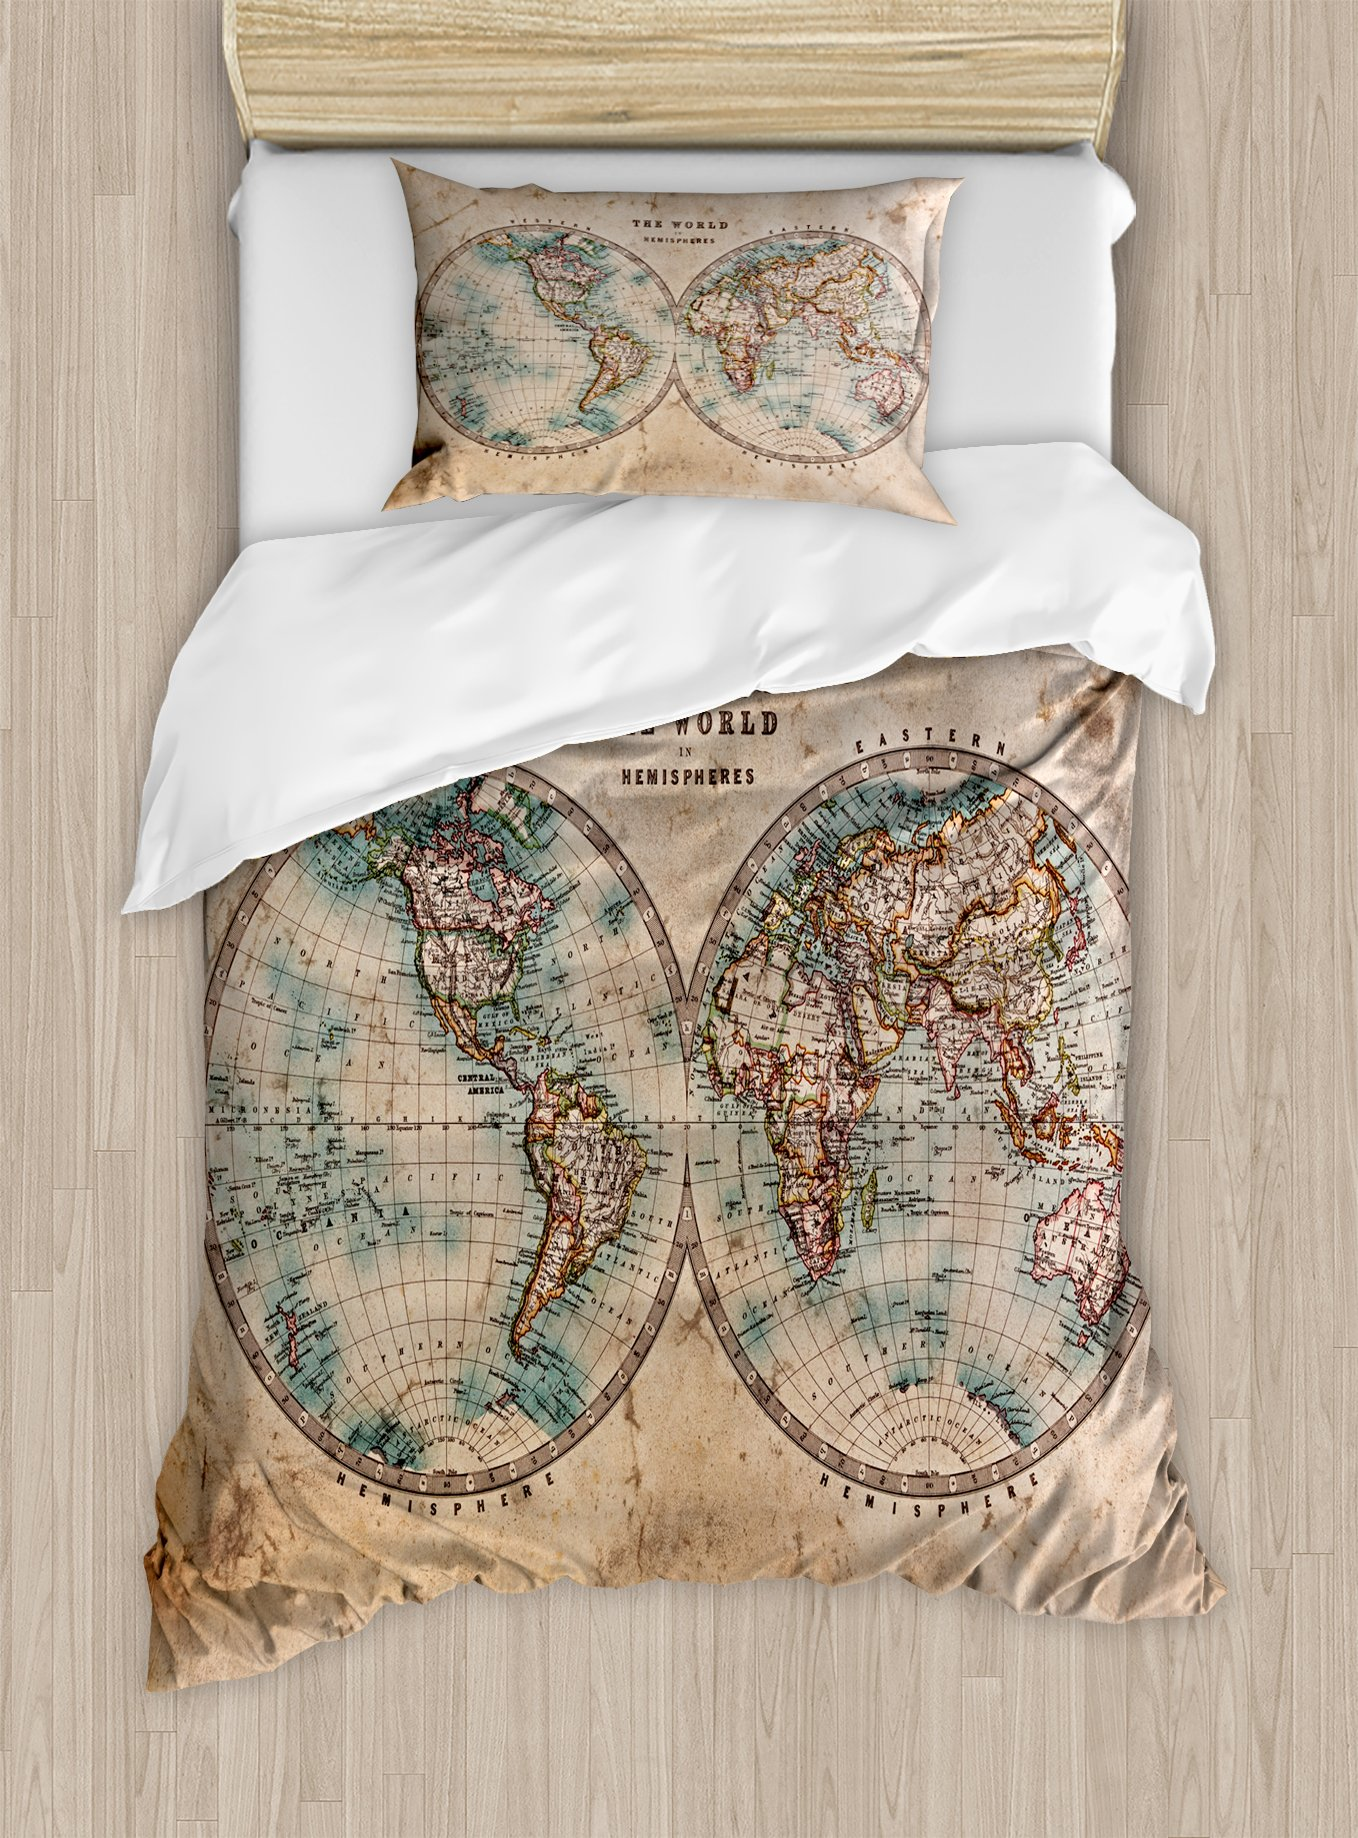 World Map Duvet Cover Set by Ambesonne, The World in Hemispheres Vintage Old Map Design Geography History Theme, 2 Piece Bedding Set with Pillow Sham, Twin / Twin XL, Burly Wood Tan Blue